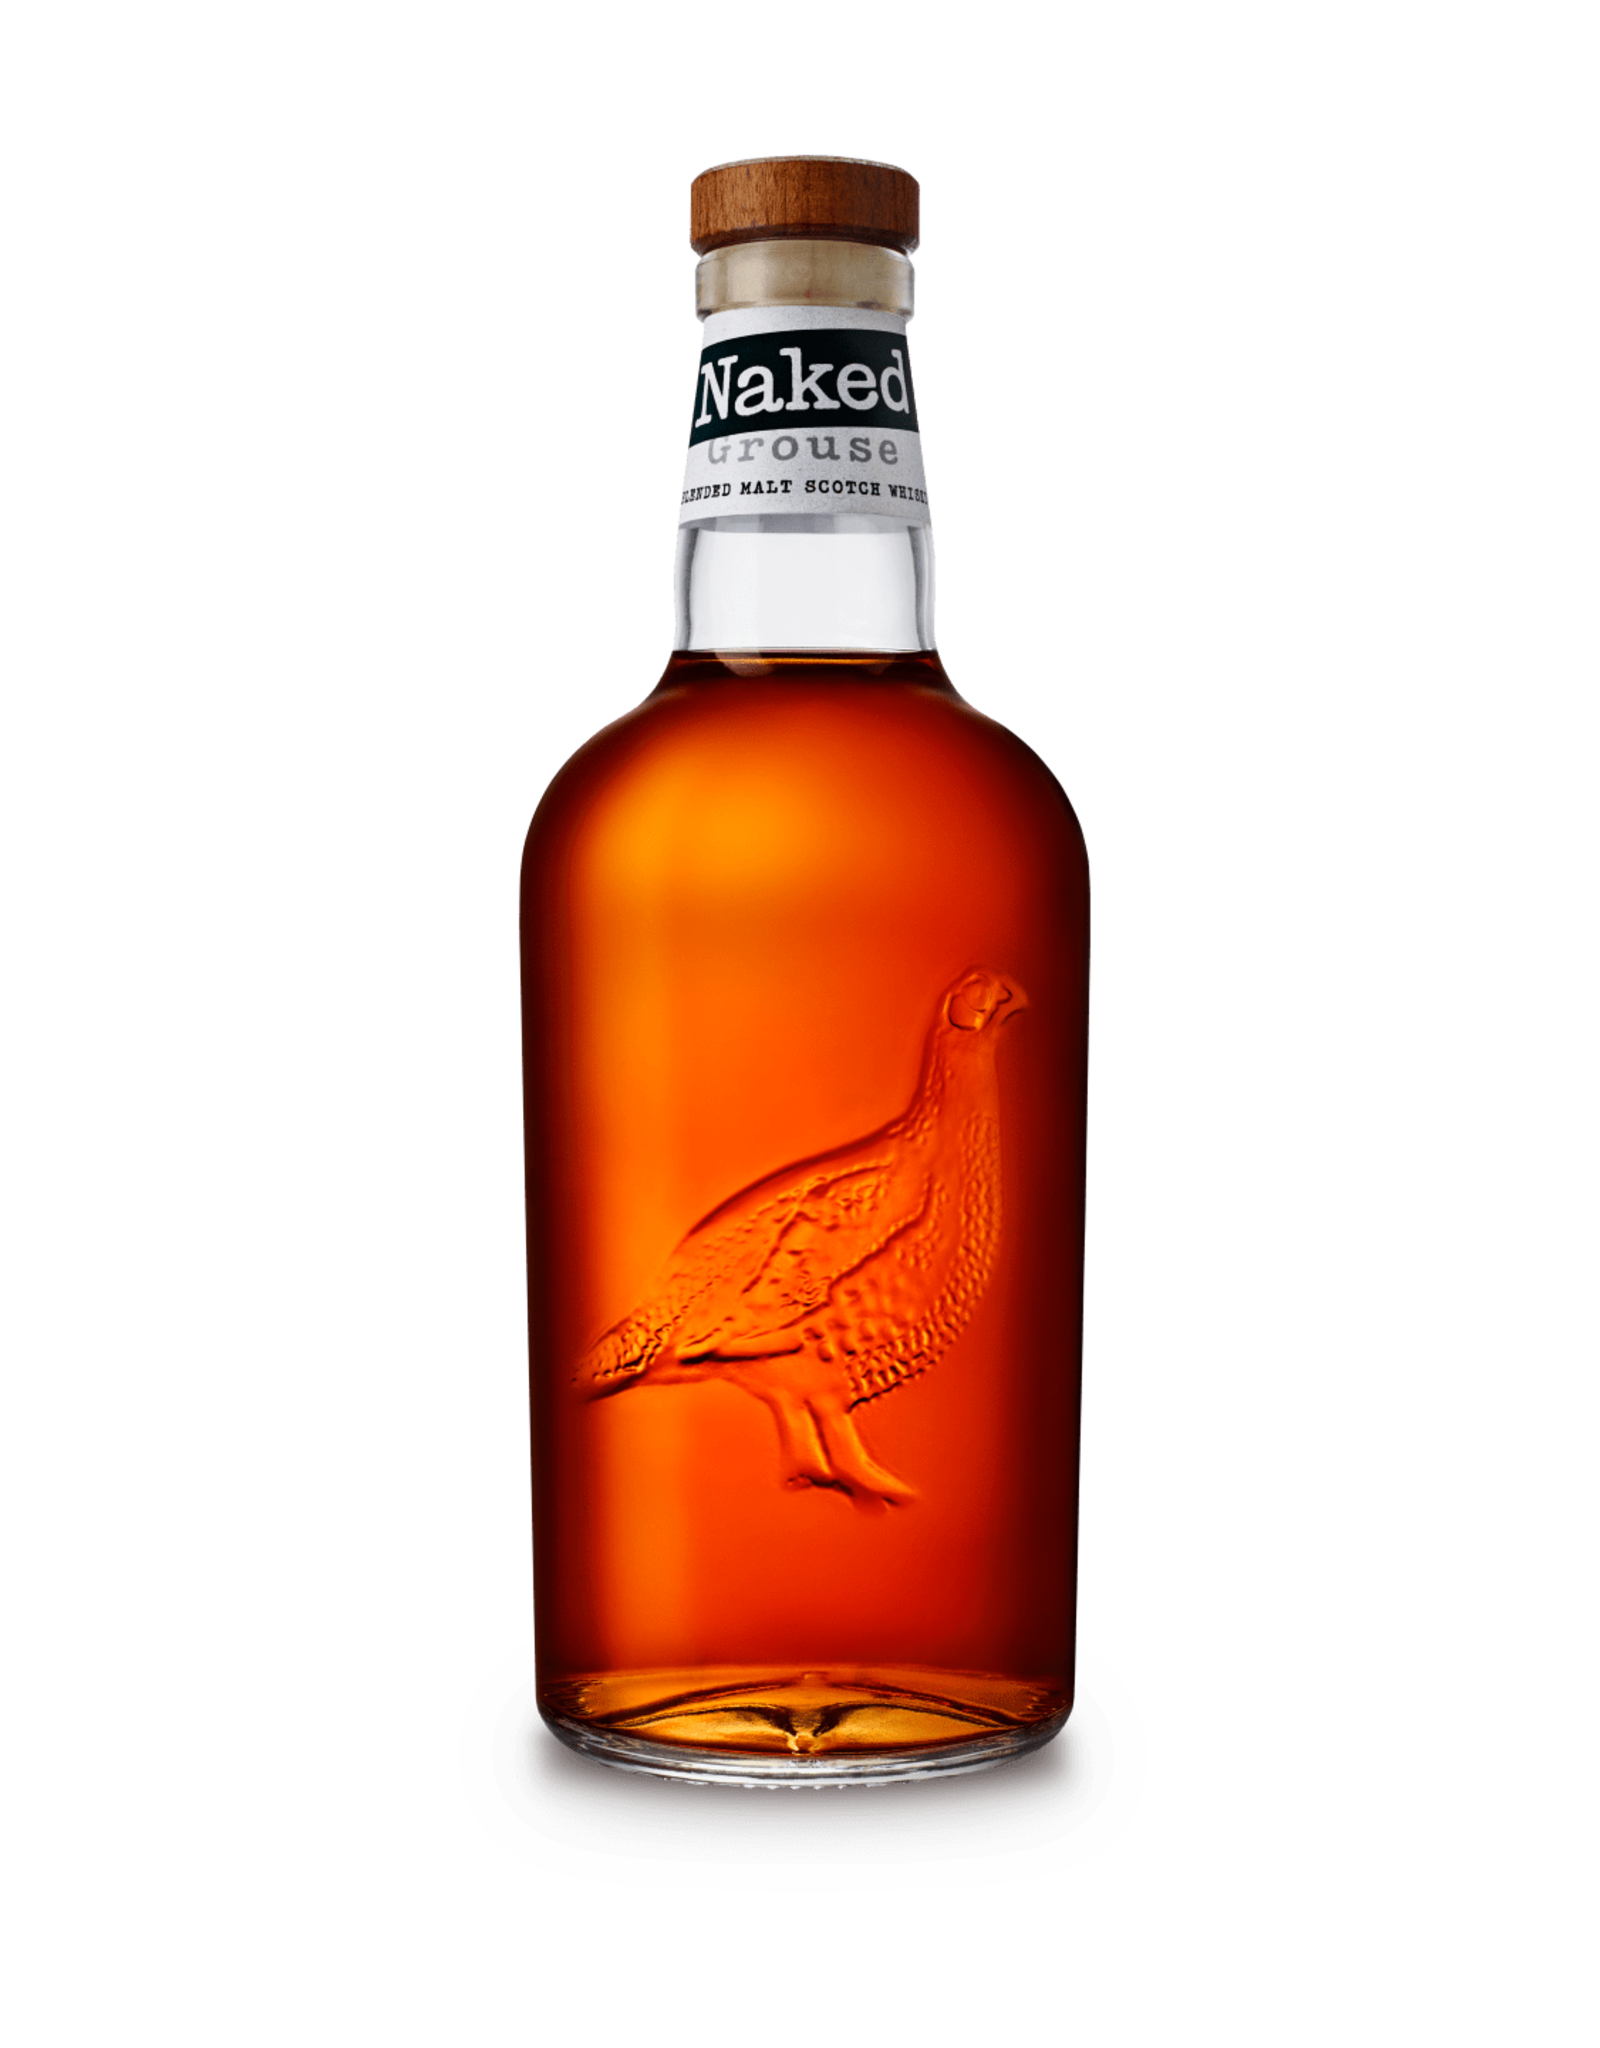 Naked Grouse Scotch